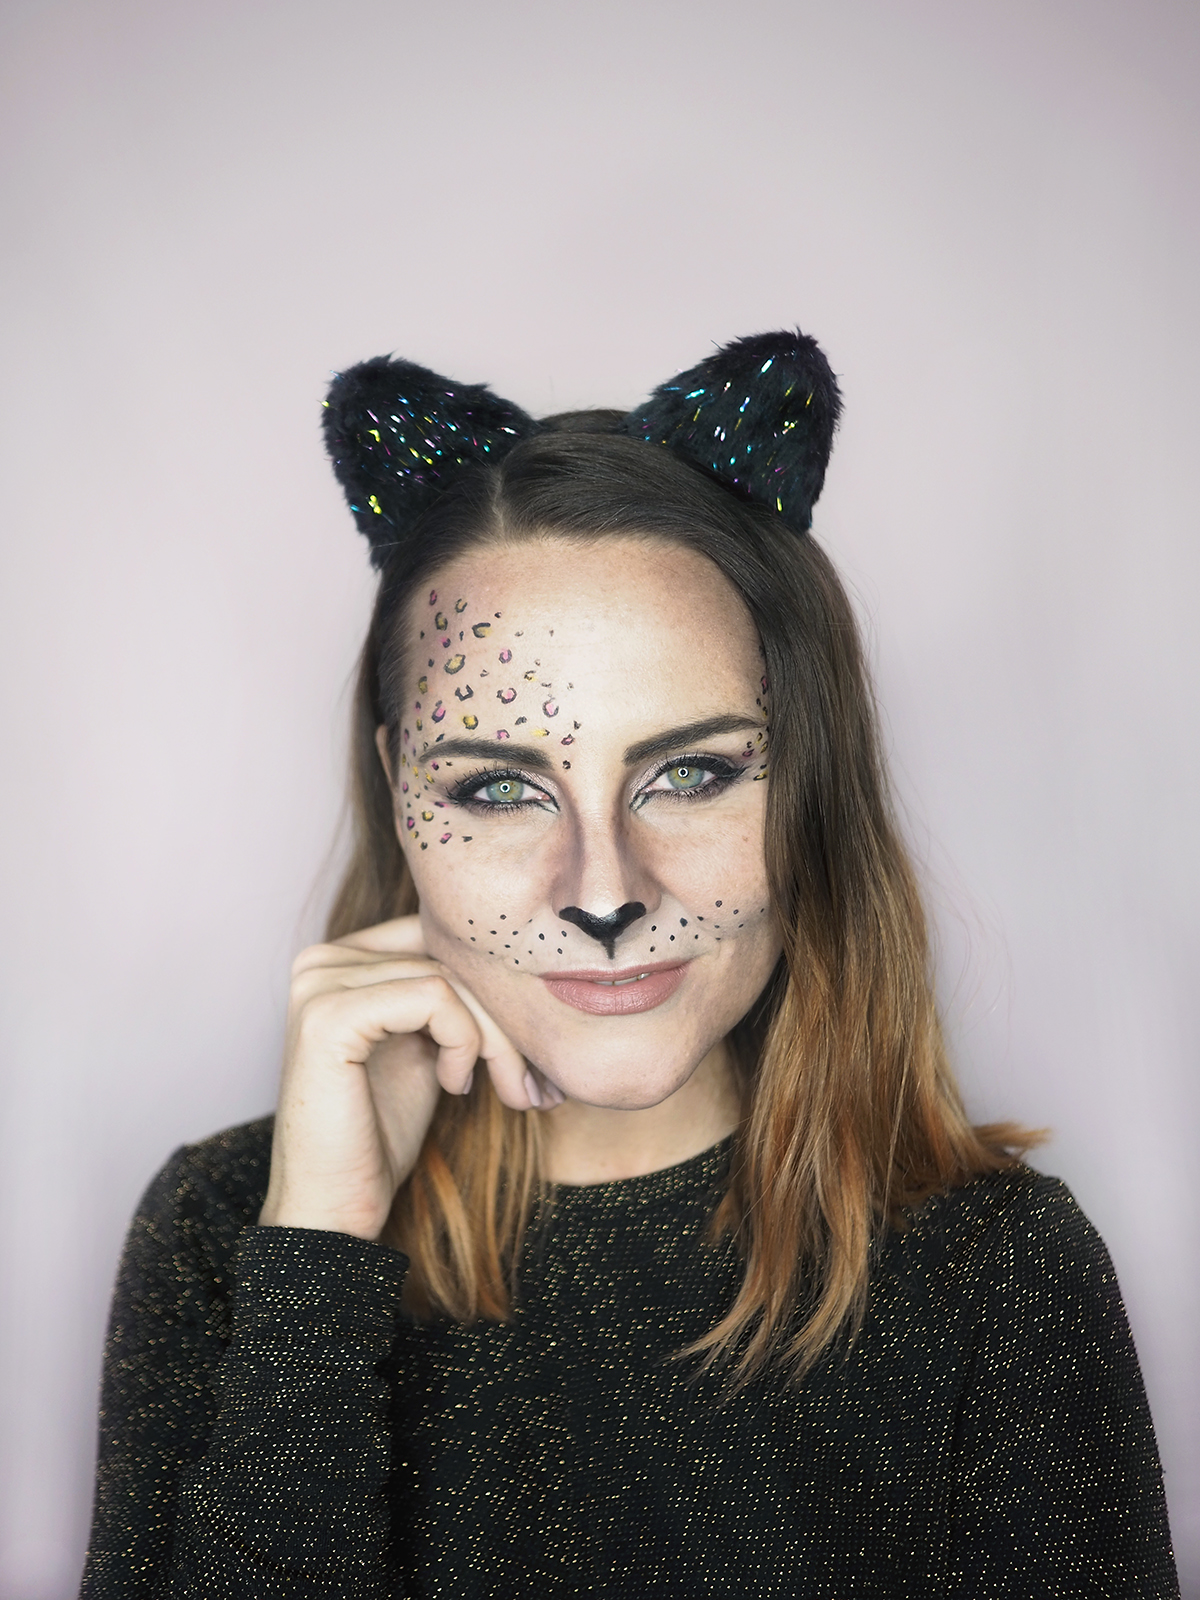 Halloween cat makeup ideas rose gold leopard print